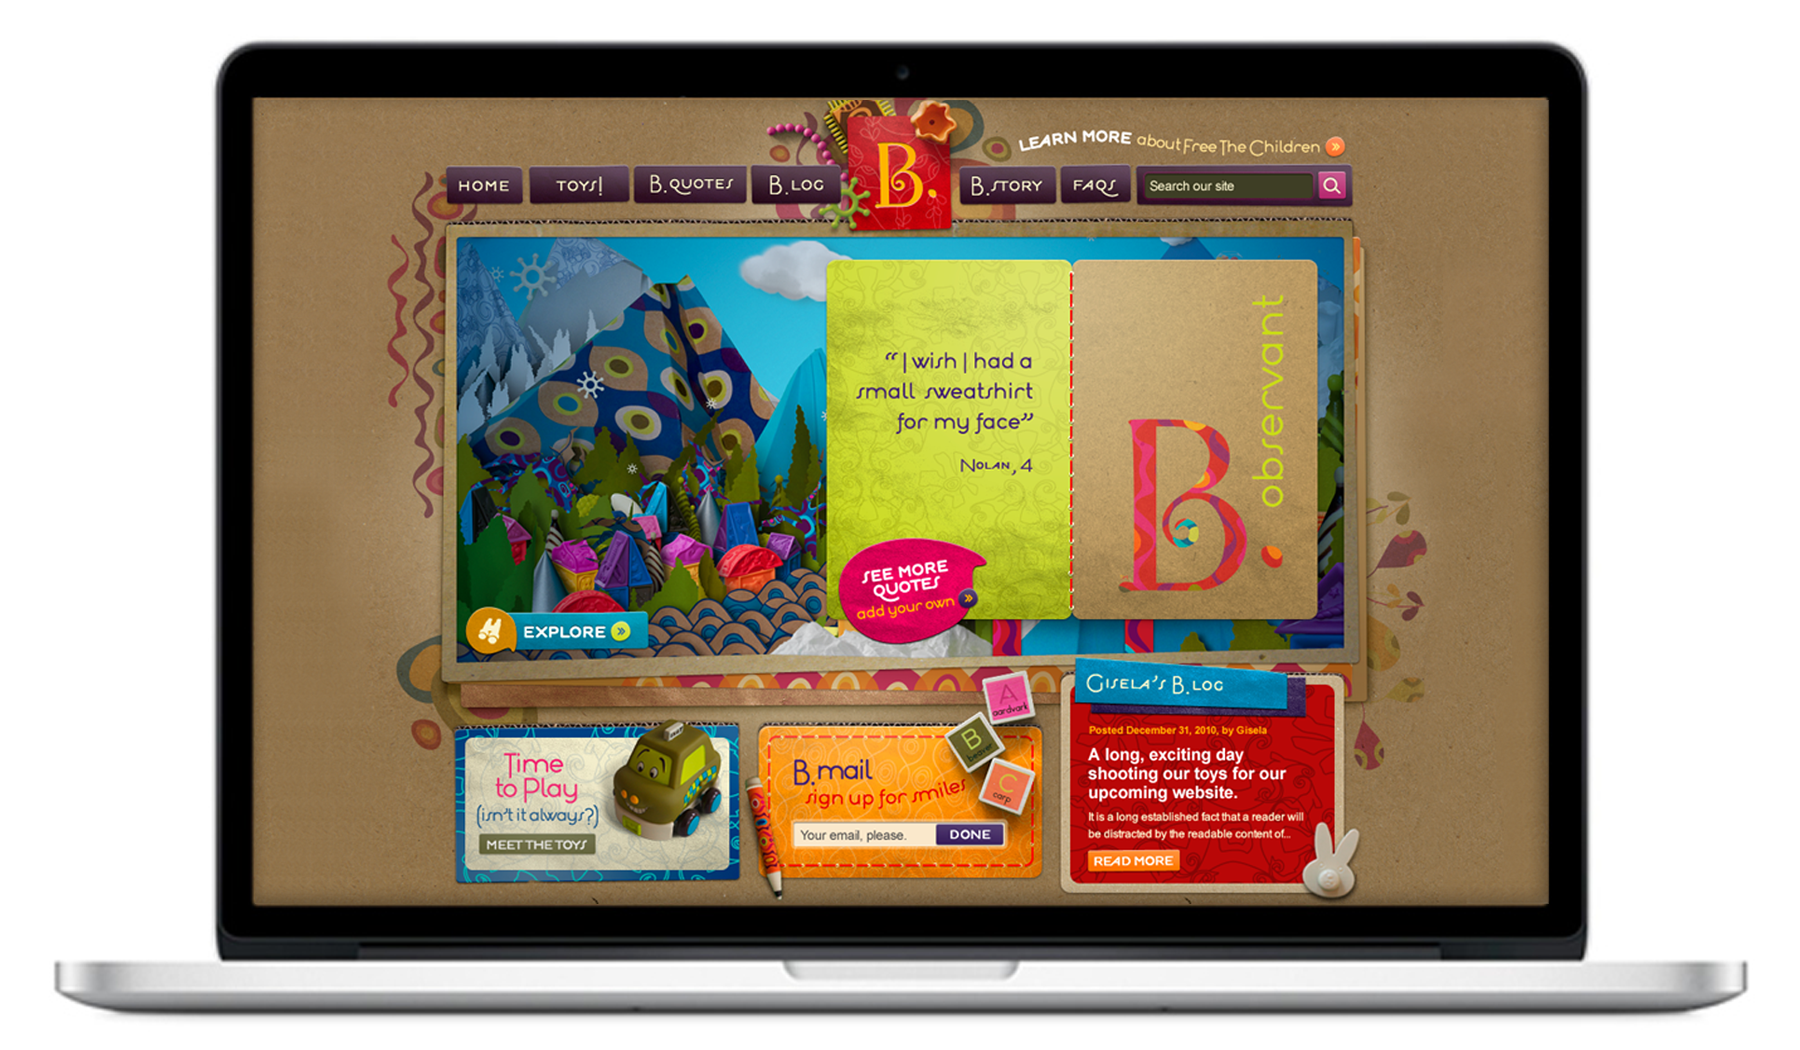 Along with the broader team I was in charge of concept, creative direction and design of the B. website. The toy company's look is a big part of the brand identity so coming up with ways to stay true to that look in  a web-friendly execution took many  work arounds, but the finished product looked, felt and even practically smelled like the brand we had developed.See the site  here .